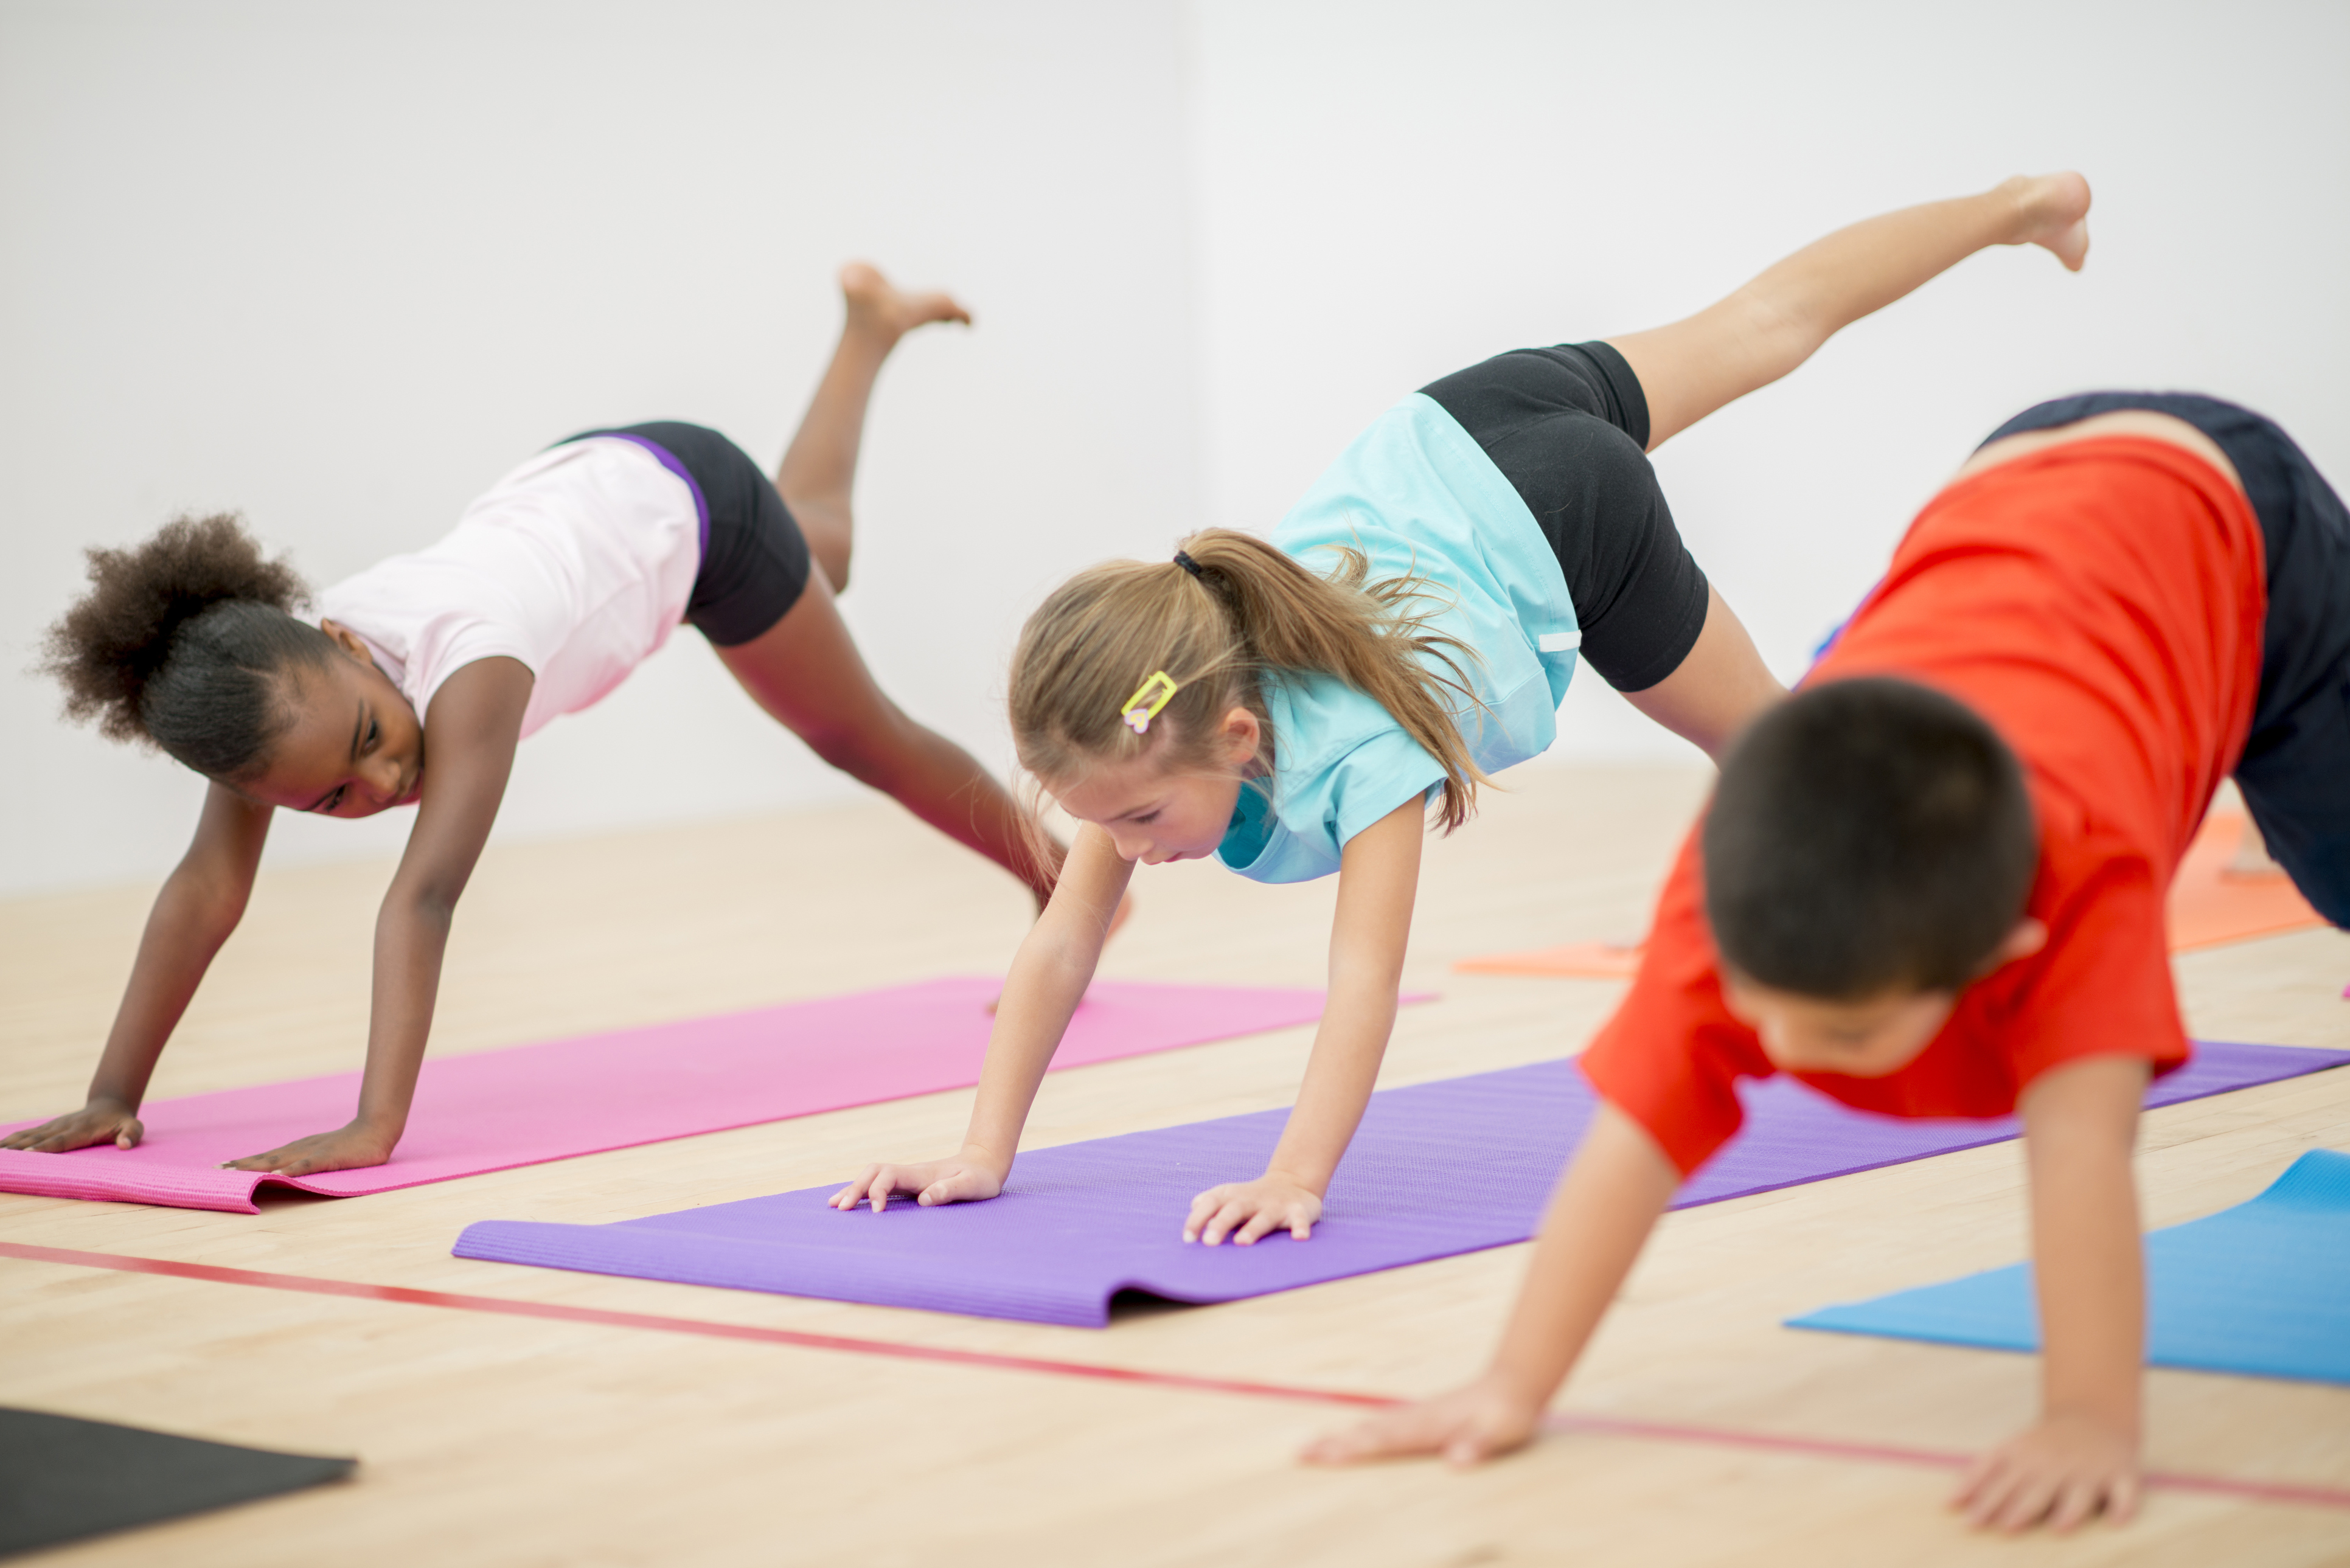 Primary school children doing yoga on a mat